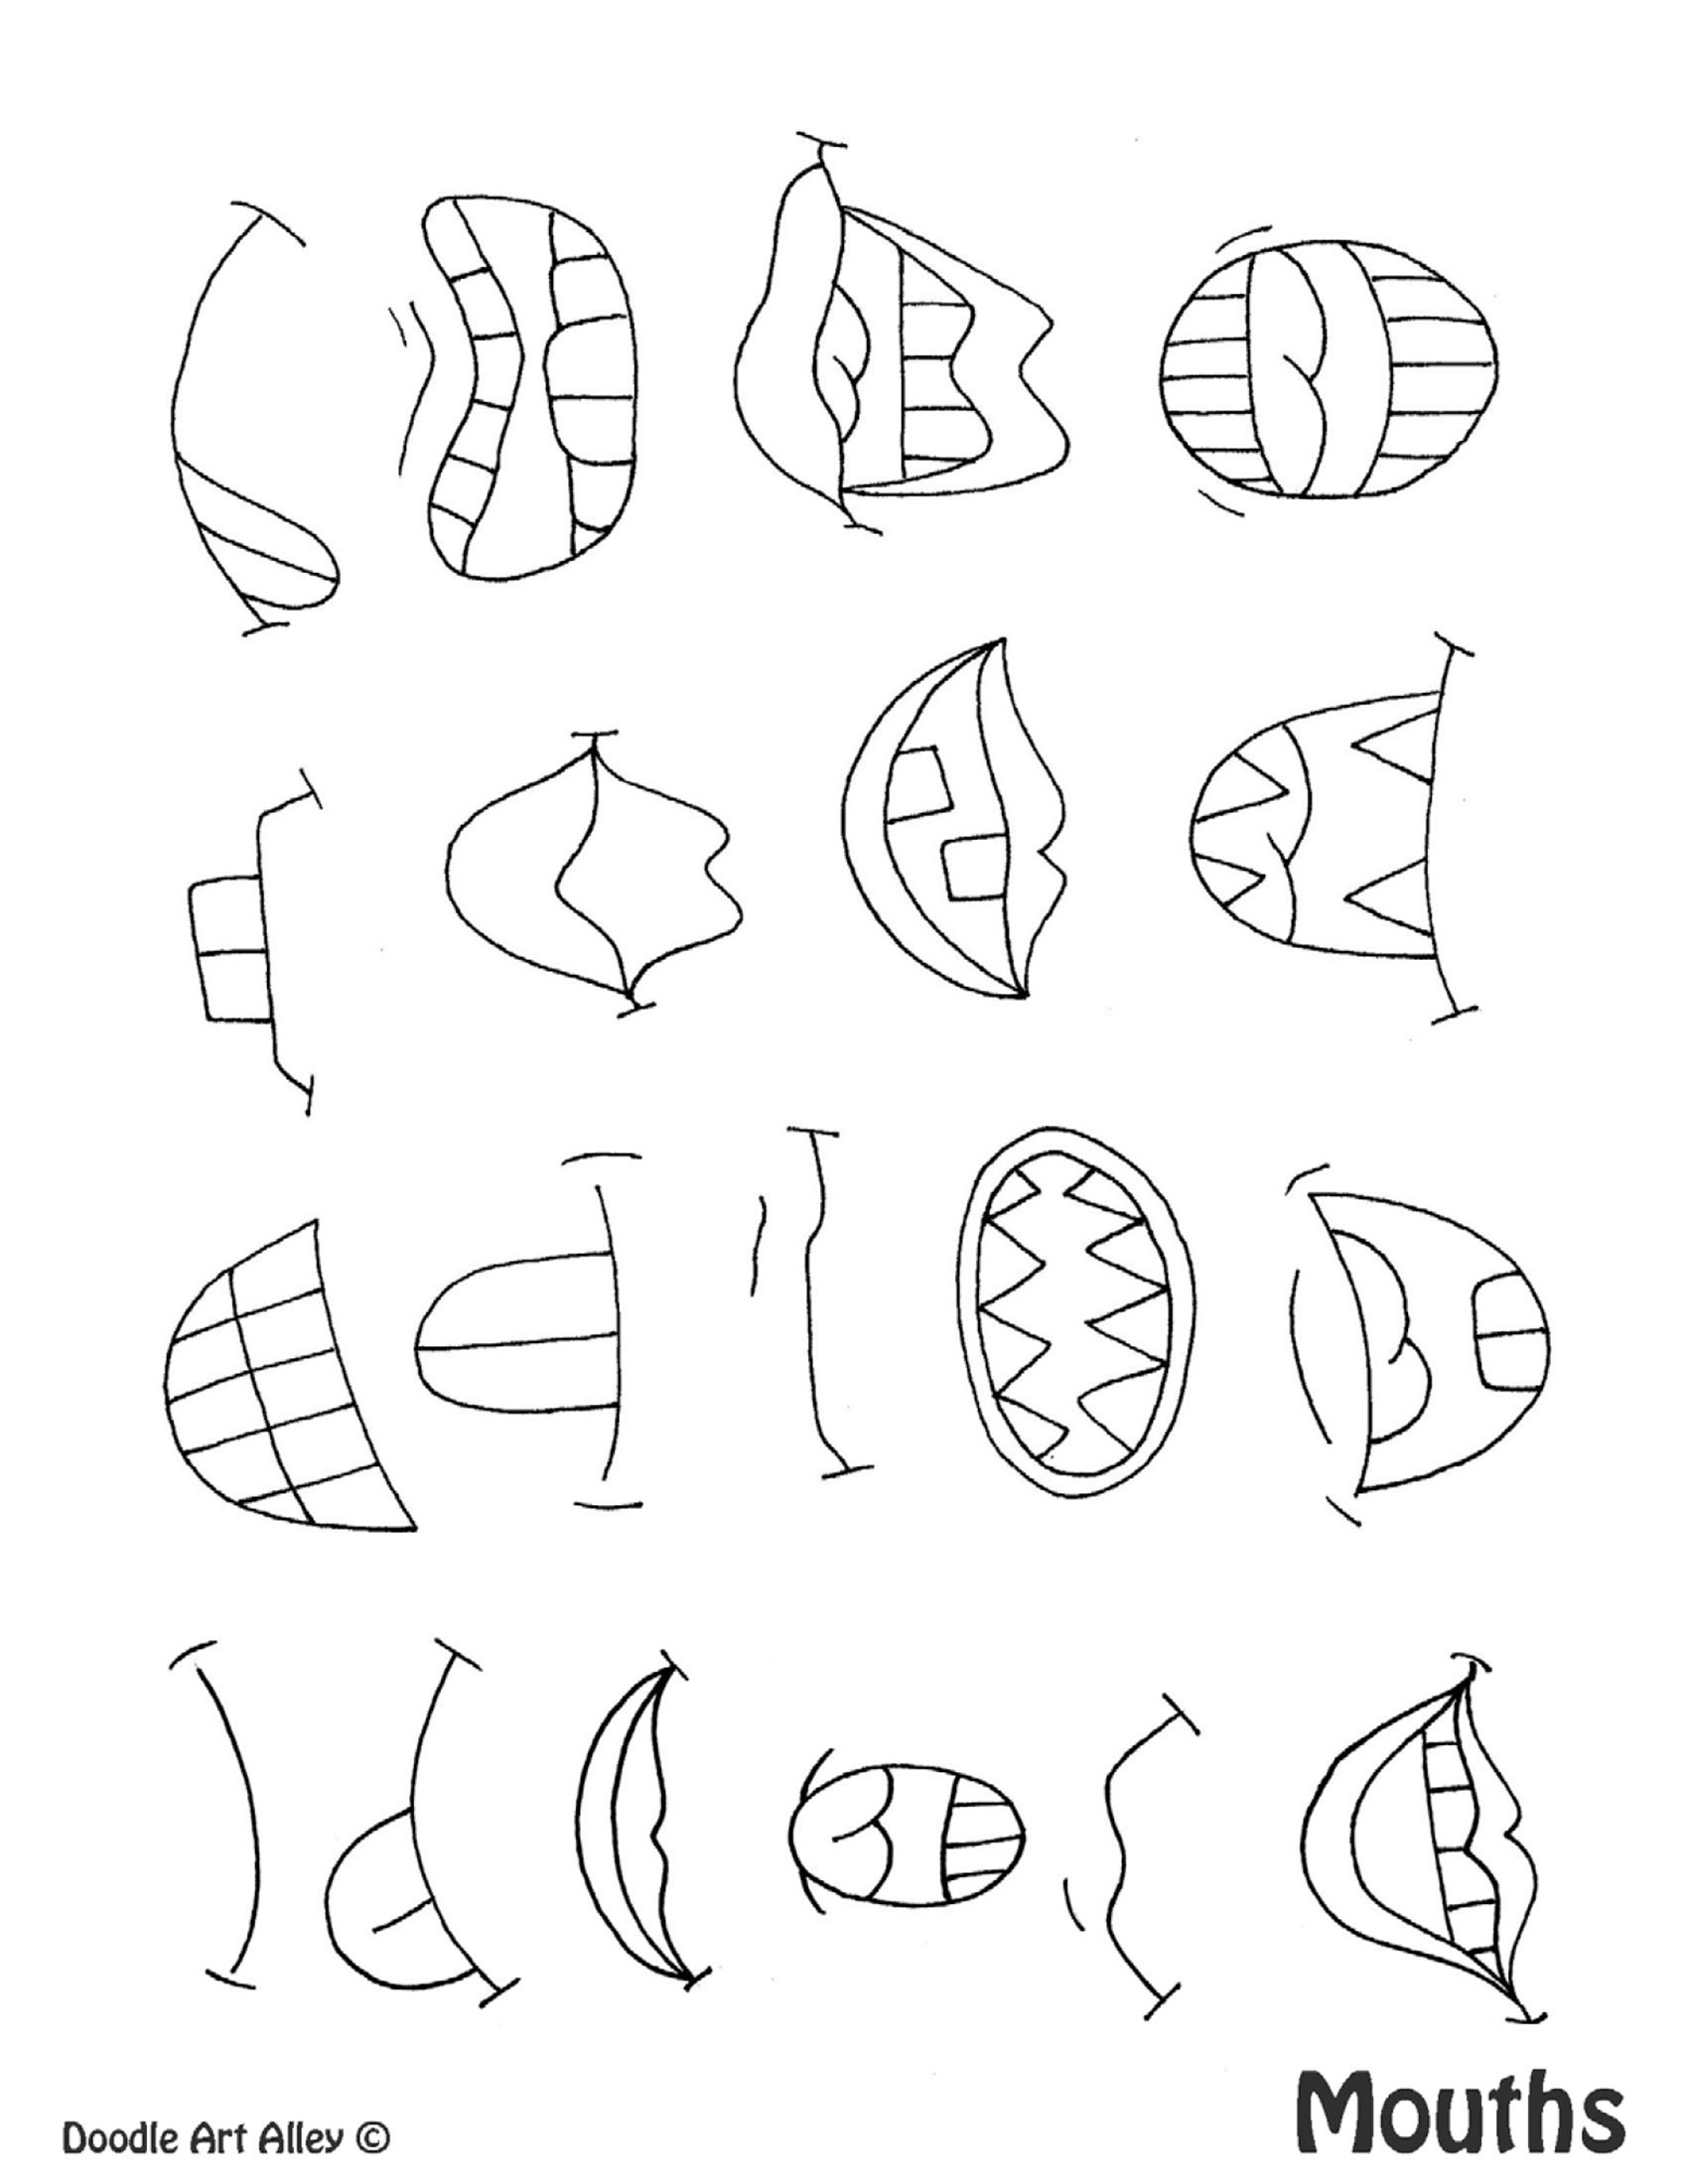 Drawing Mouths Worksheet